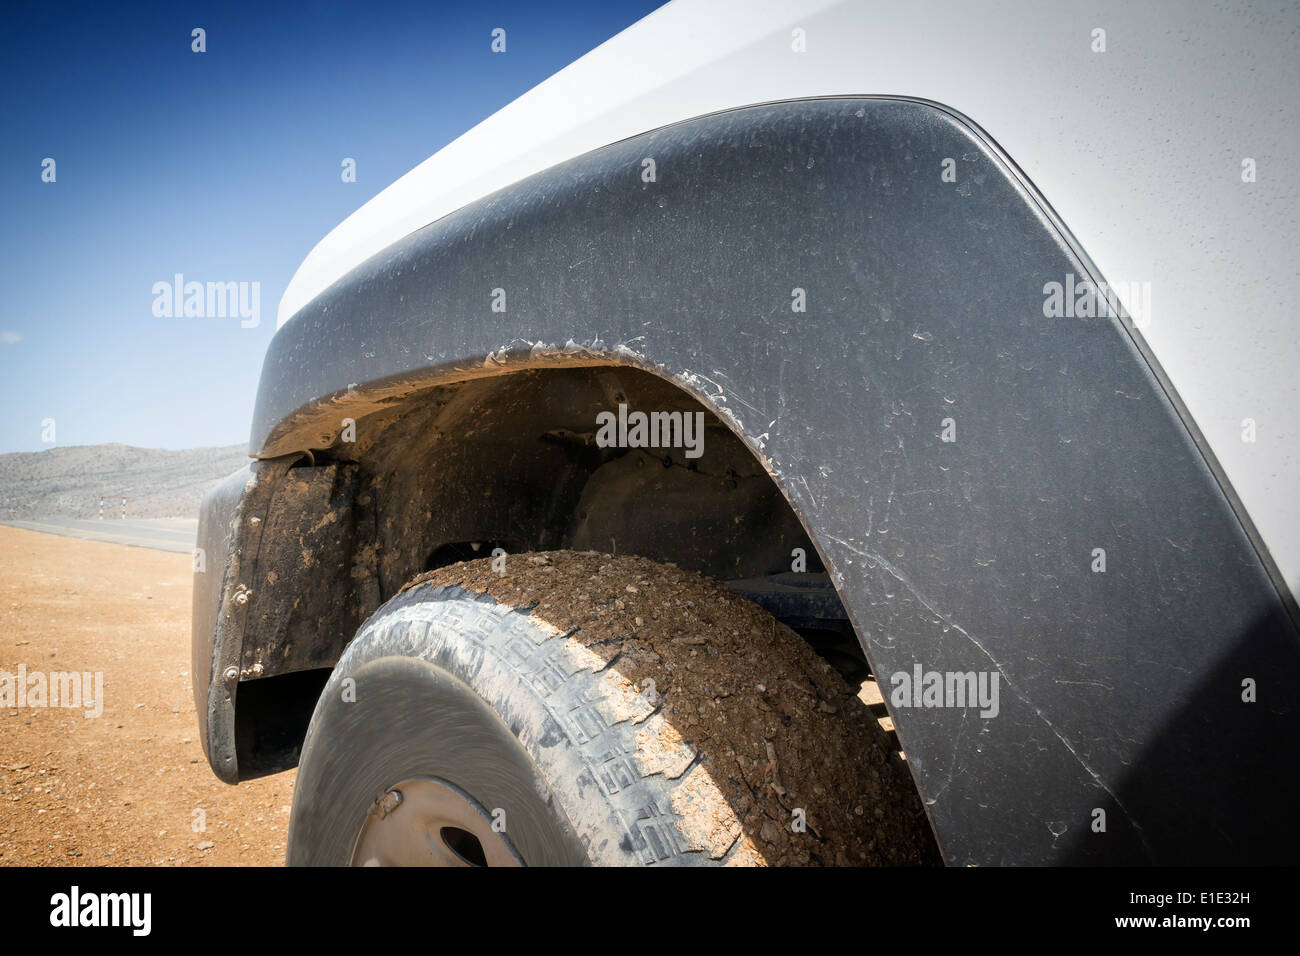 Closeup image of a offroad car in the desert of Oman - Stock Image